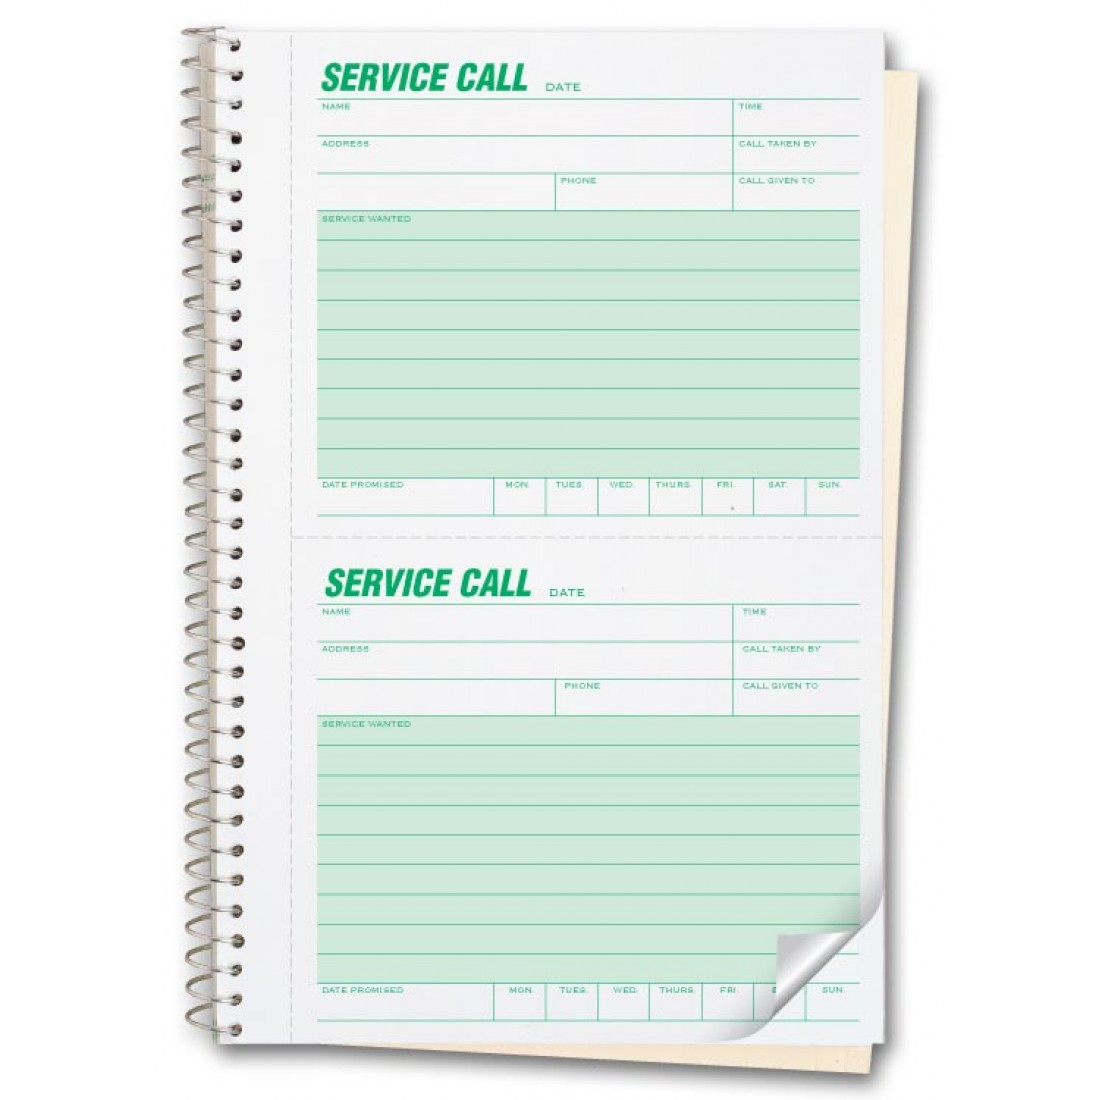 Numbered Carbonless Service Call Books